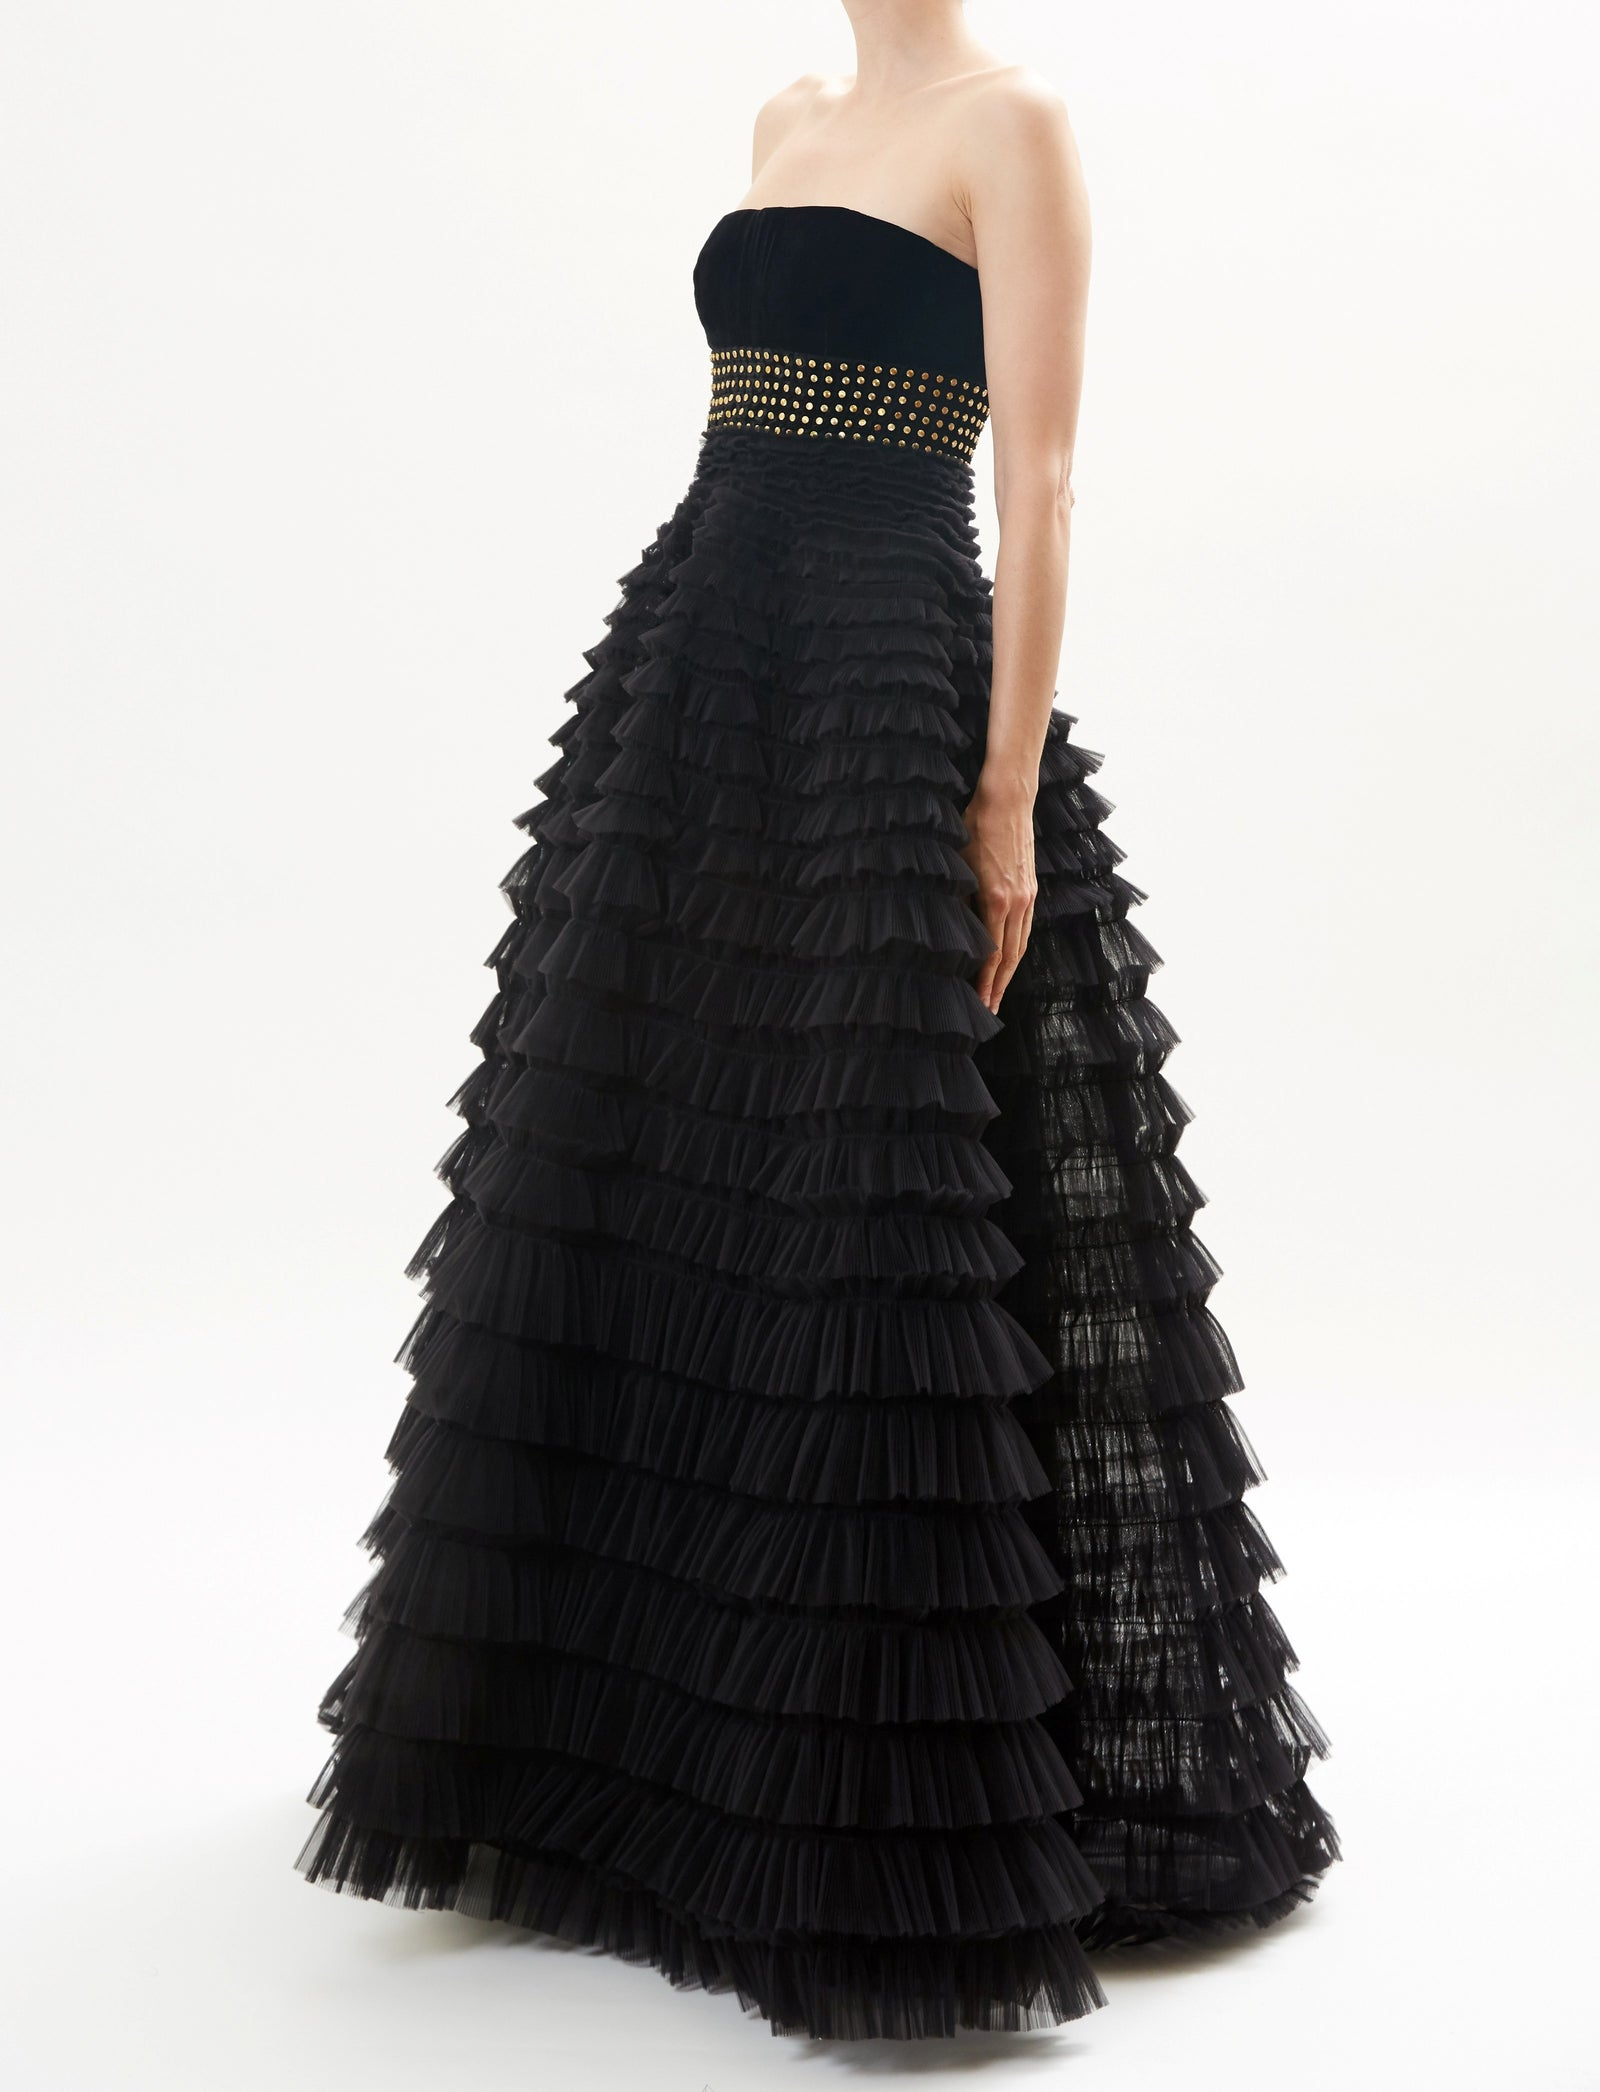 Black Strapless Tiered Tulle Full Skirt Gown With Embroidered Detail